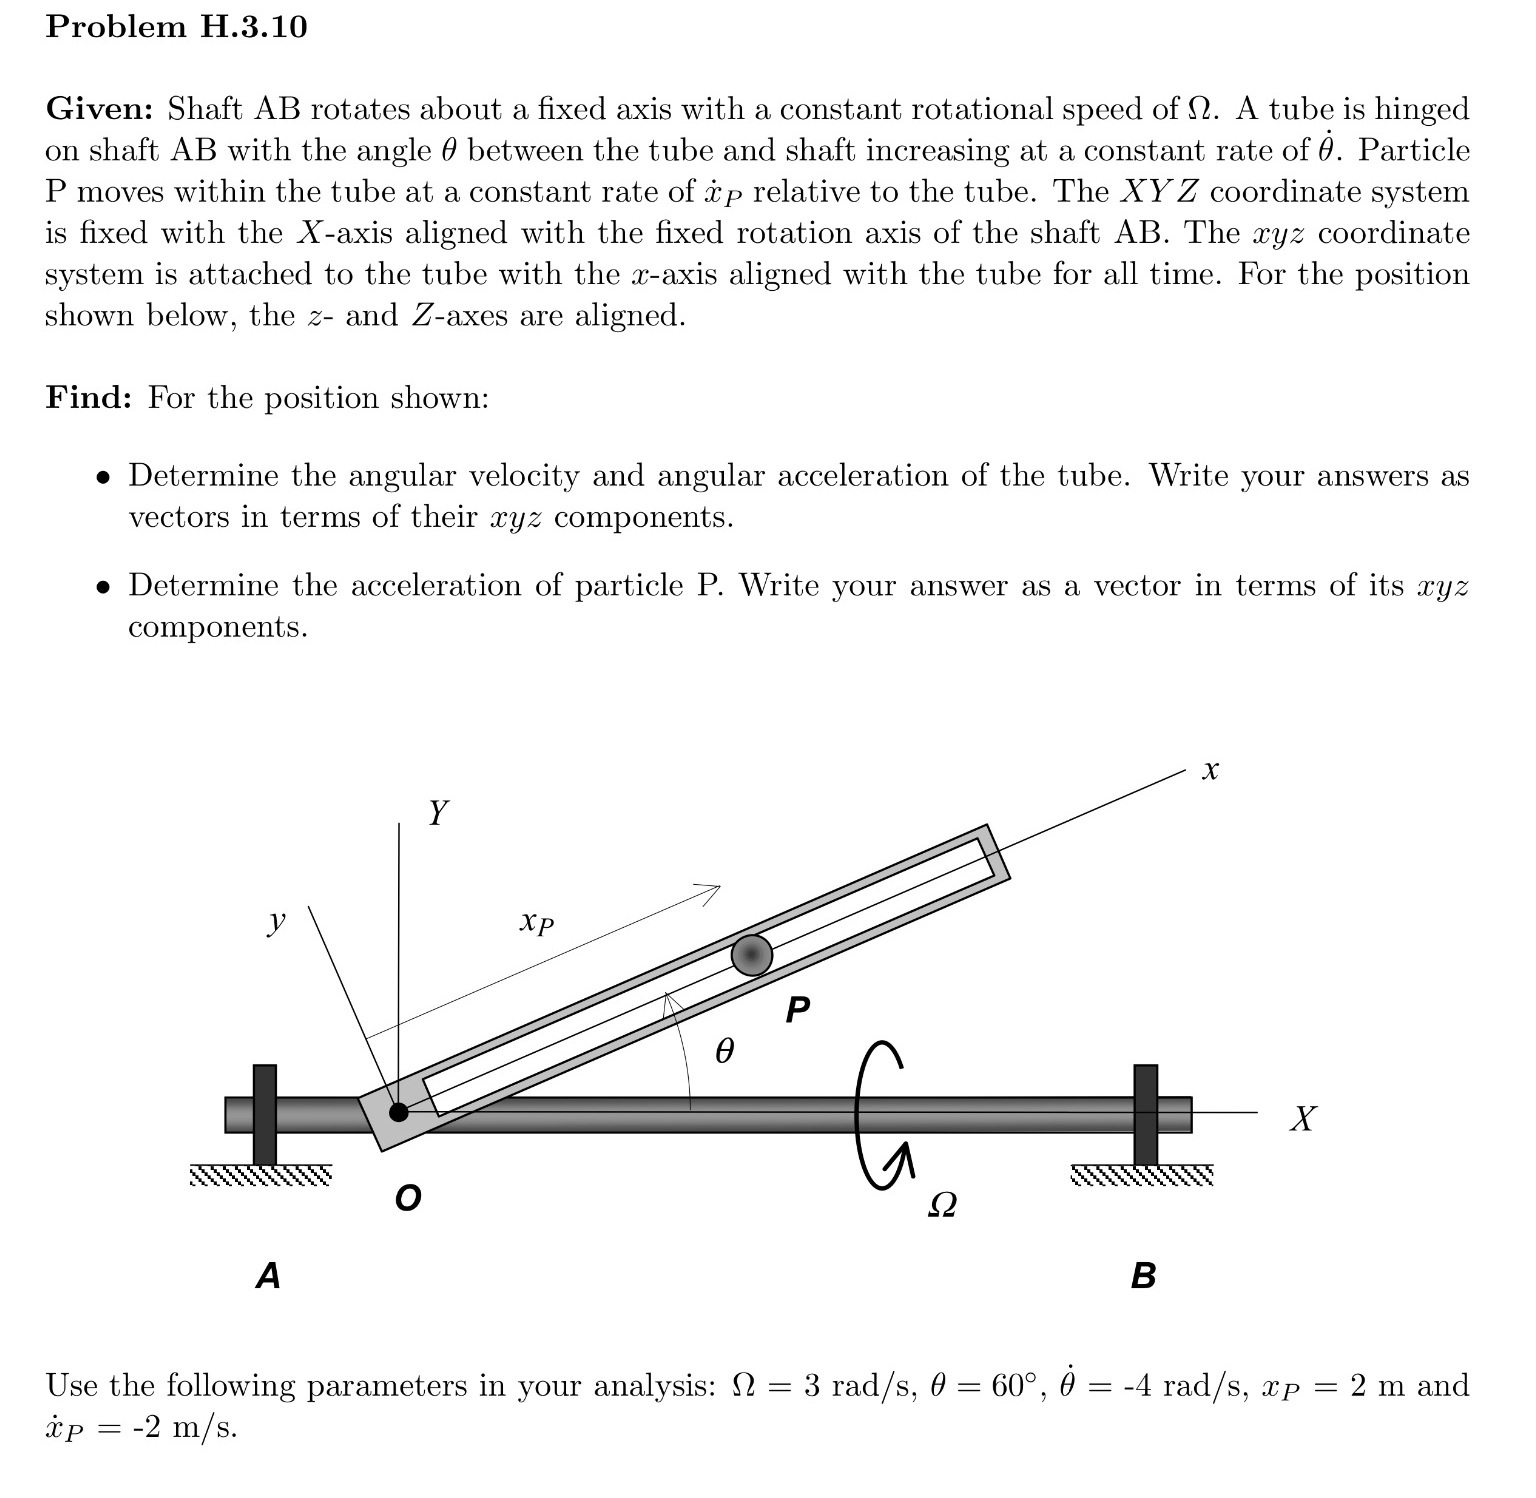 Shaft AB rotates about a fixed axis with a constan